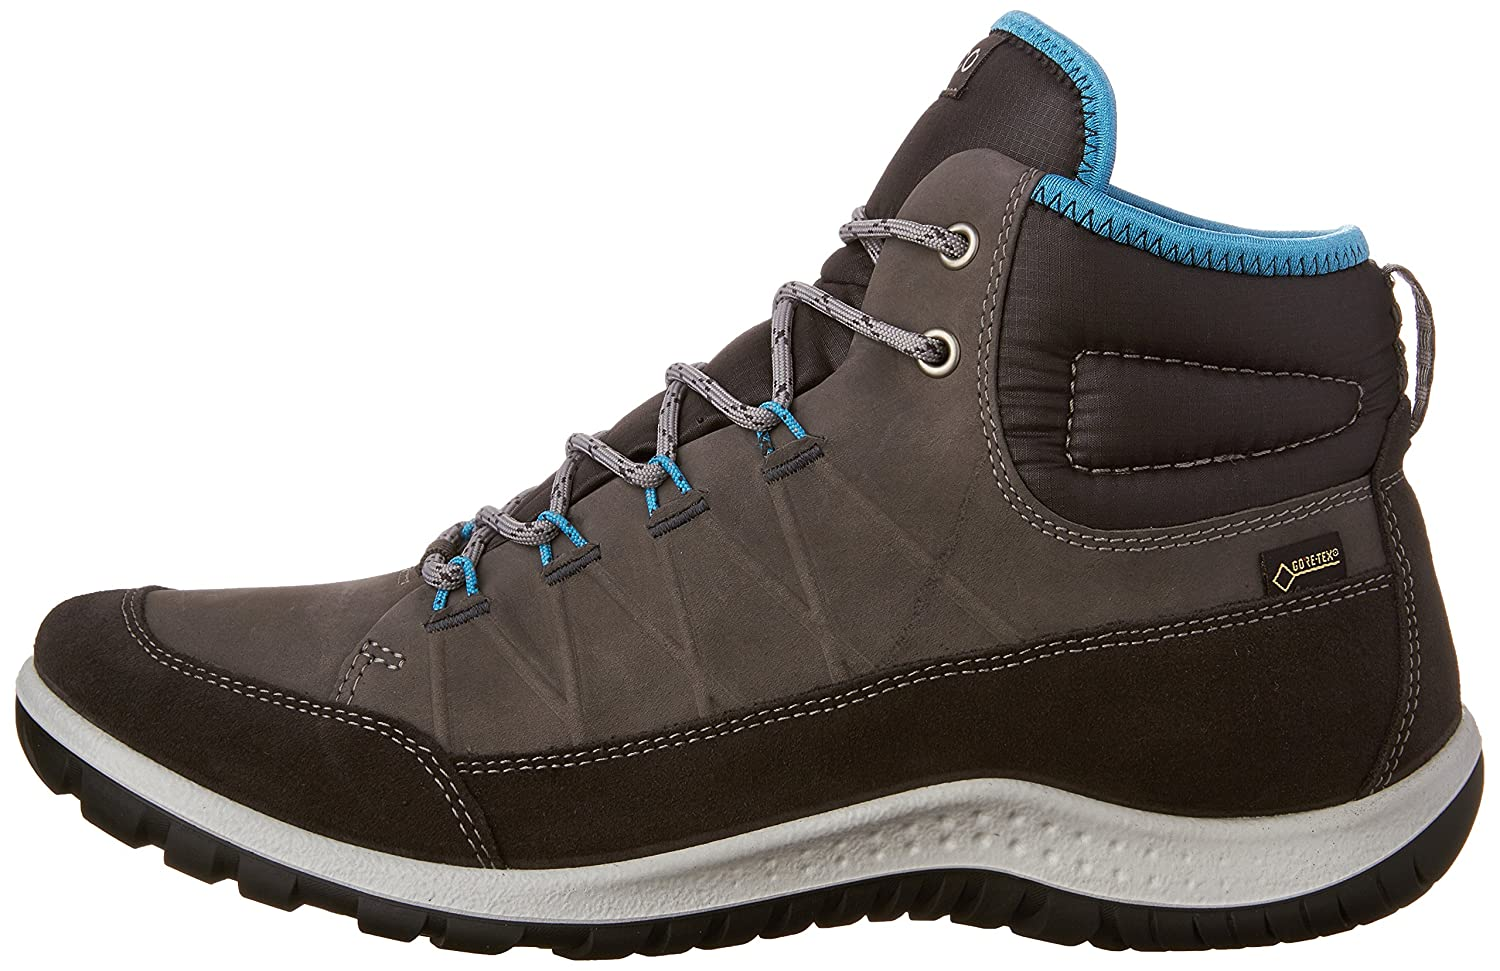 ECCO Women's Aspina High Gore-Tex EU/11-11.5 Hiking Shoe B0163GD0ME 42 EU/11-11.5 Gore-Tex M US|Moonless/Dark Shadow a22fc9